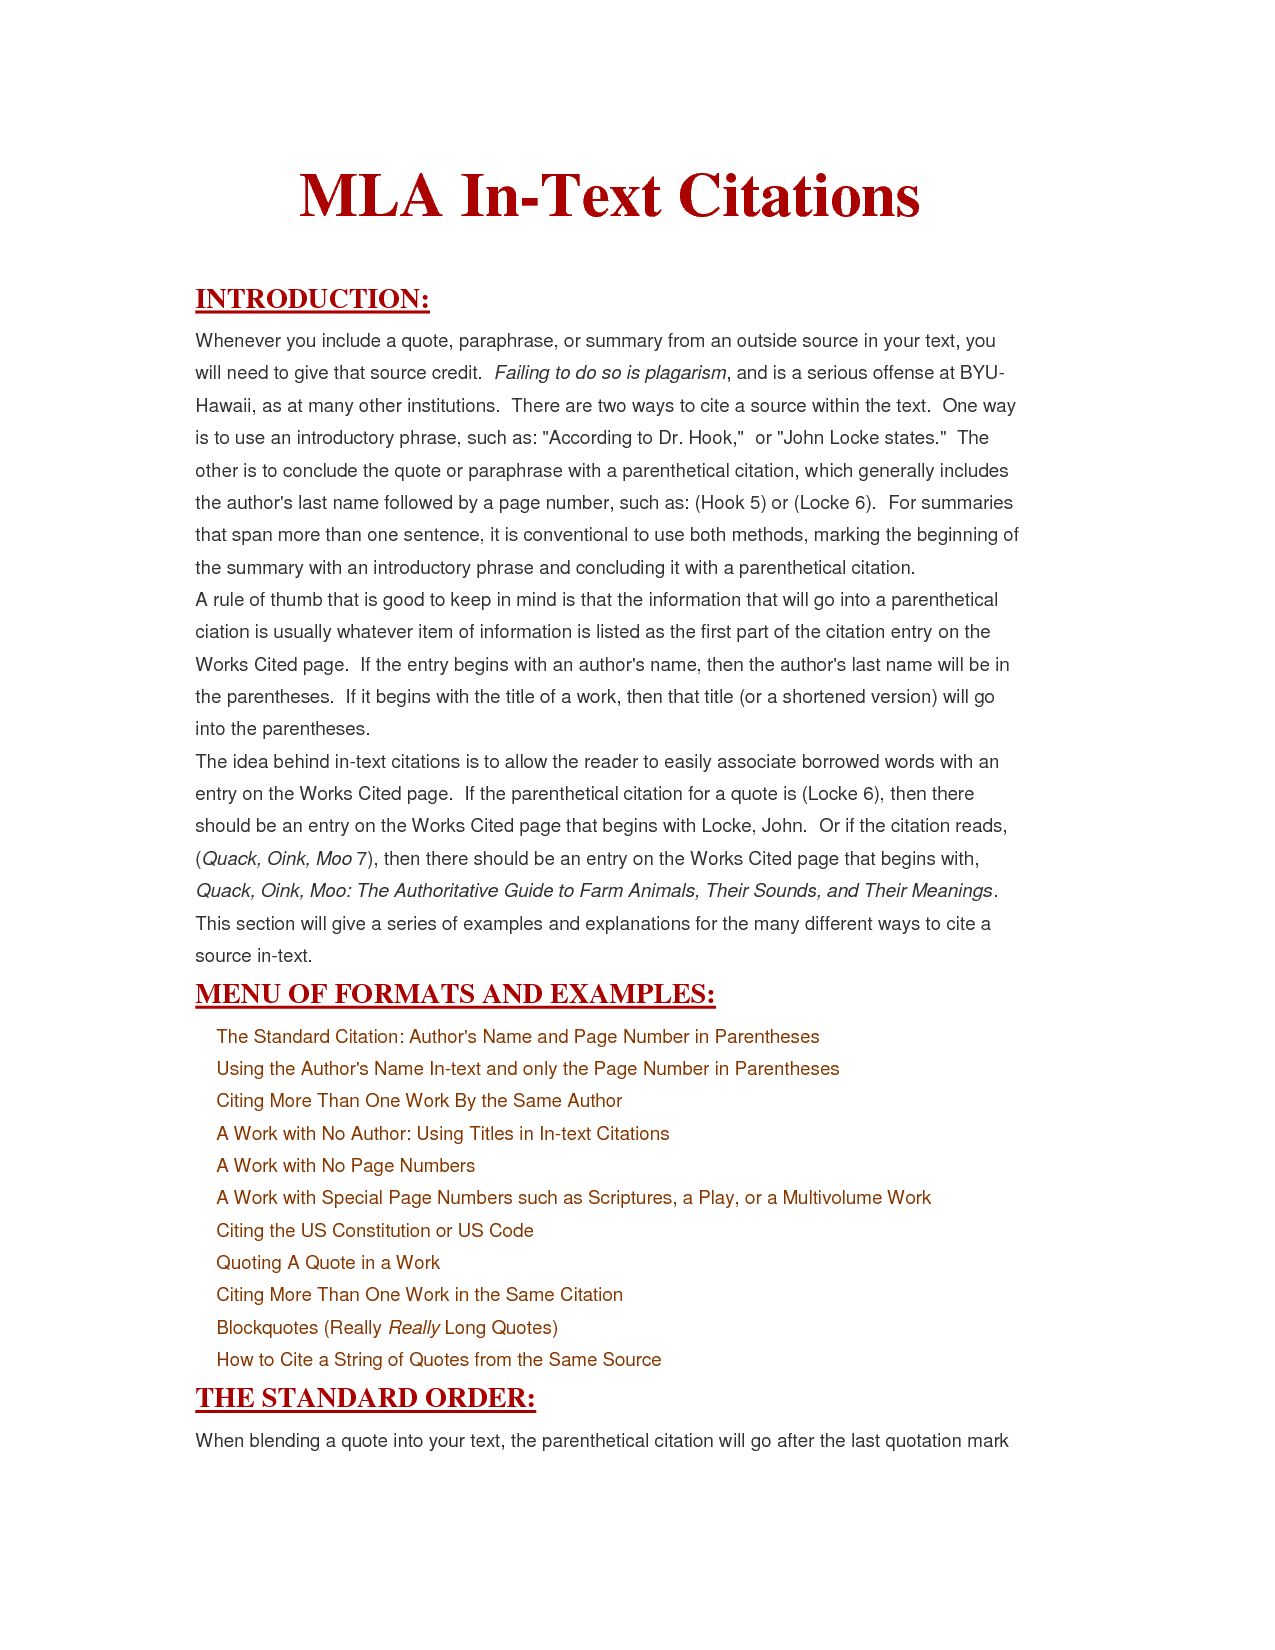 024 Essay Example How To Quote Book In An Mla Citation Format Mersn Proforum Co Write Page References Academic Website At The End Of Online Formidable A Apa Style With Multiple Authors Full